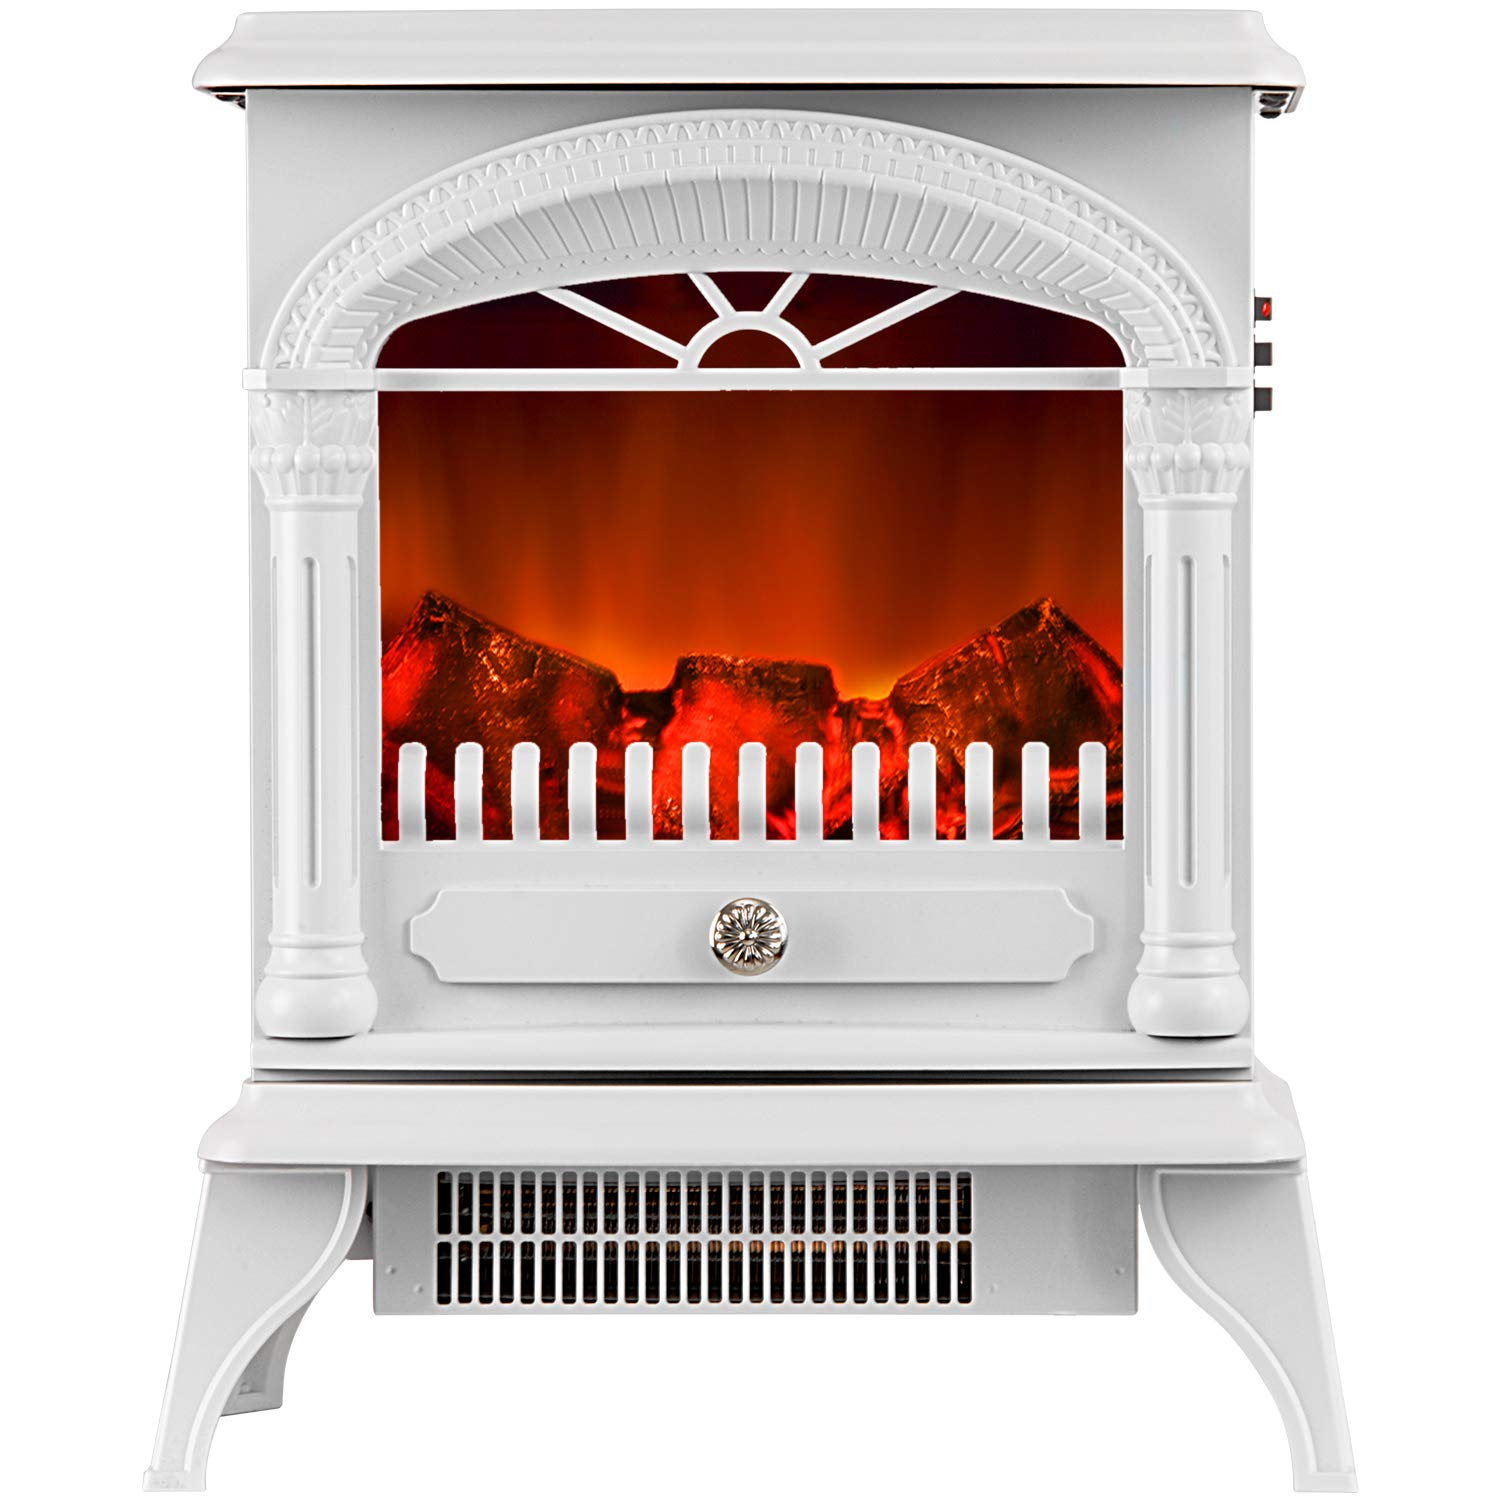 Leisure Zone Electric Stove Heater Fire Place/Fireplace 1850W Portable - W41.5 X D21 X H48cm (Black)